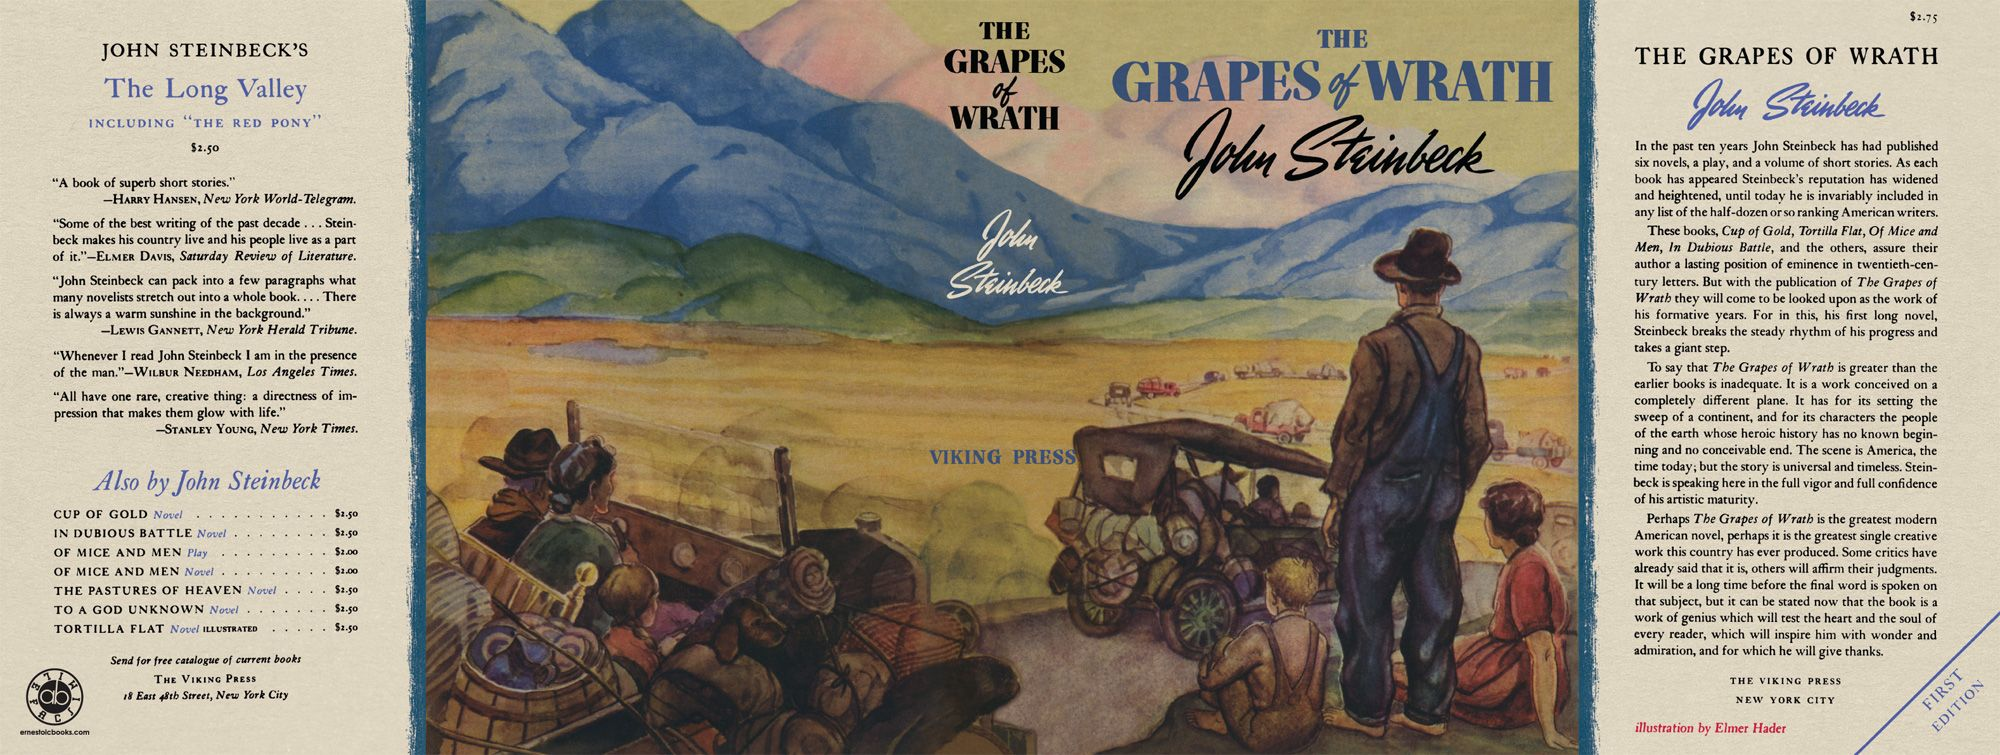 an analysis of the symbolism in the grapes of wrath a novel by john steinbeck In the grapes of wrath, john steinbeck speaks of the ongoing tirade hovering over the never-ending cycle of unemployment, and the quest for stability, independence, and happiness this book opens at the scene of the aftermath of a typical dust storm.